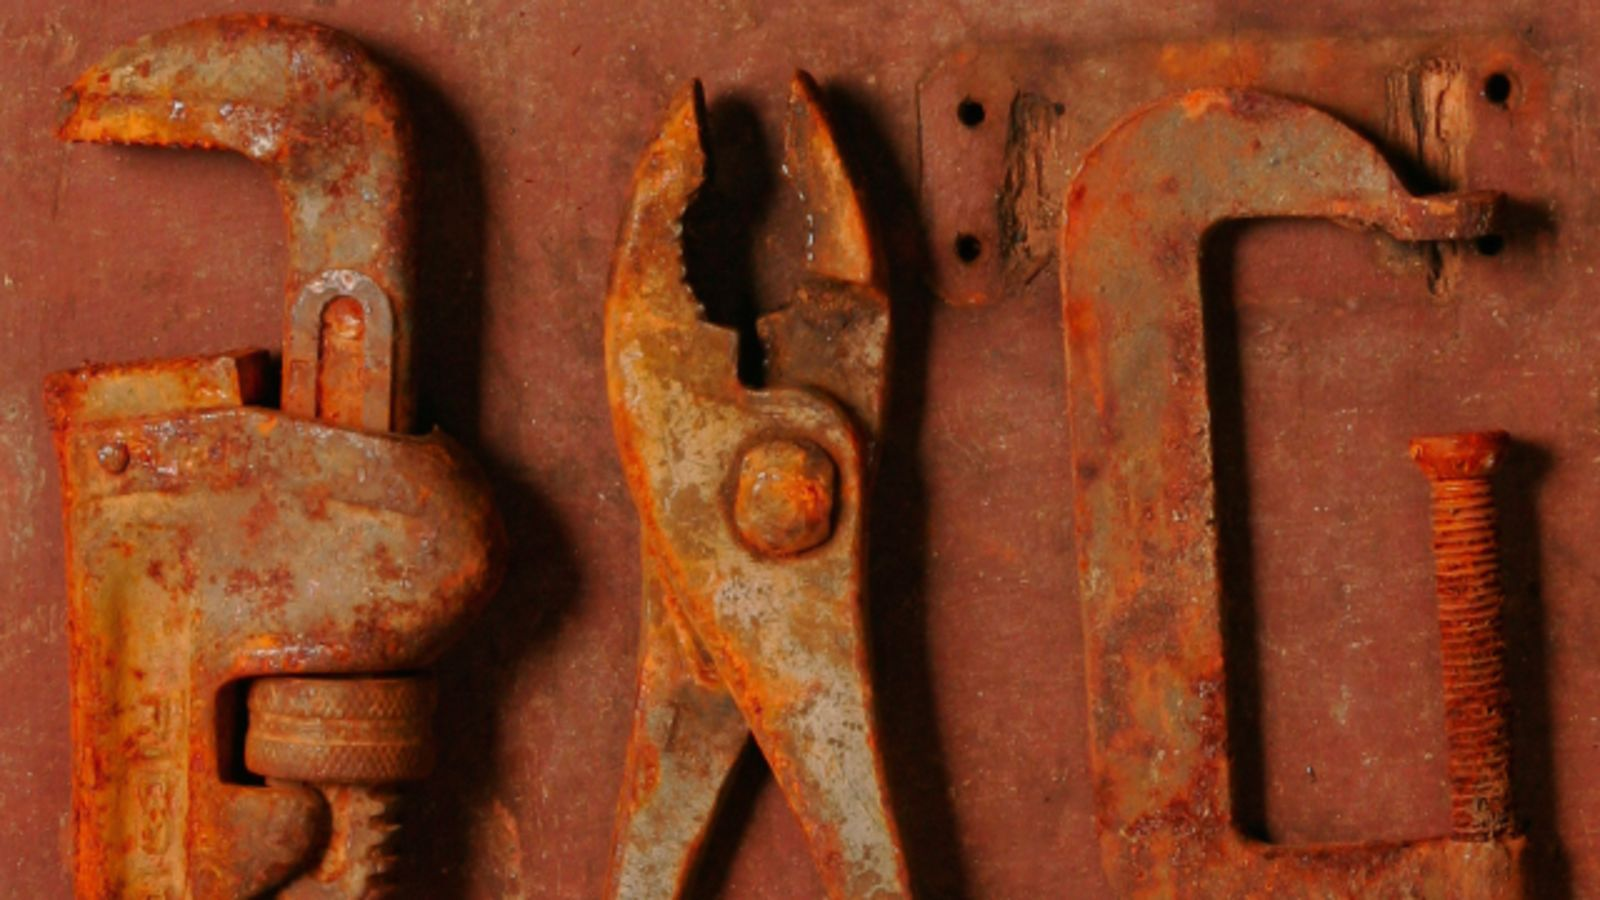 How to remove rust from old tools projects to try pinterest